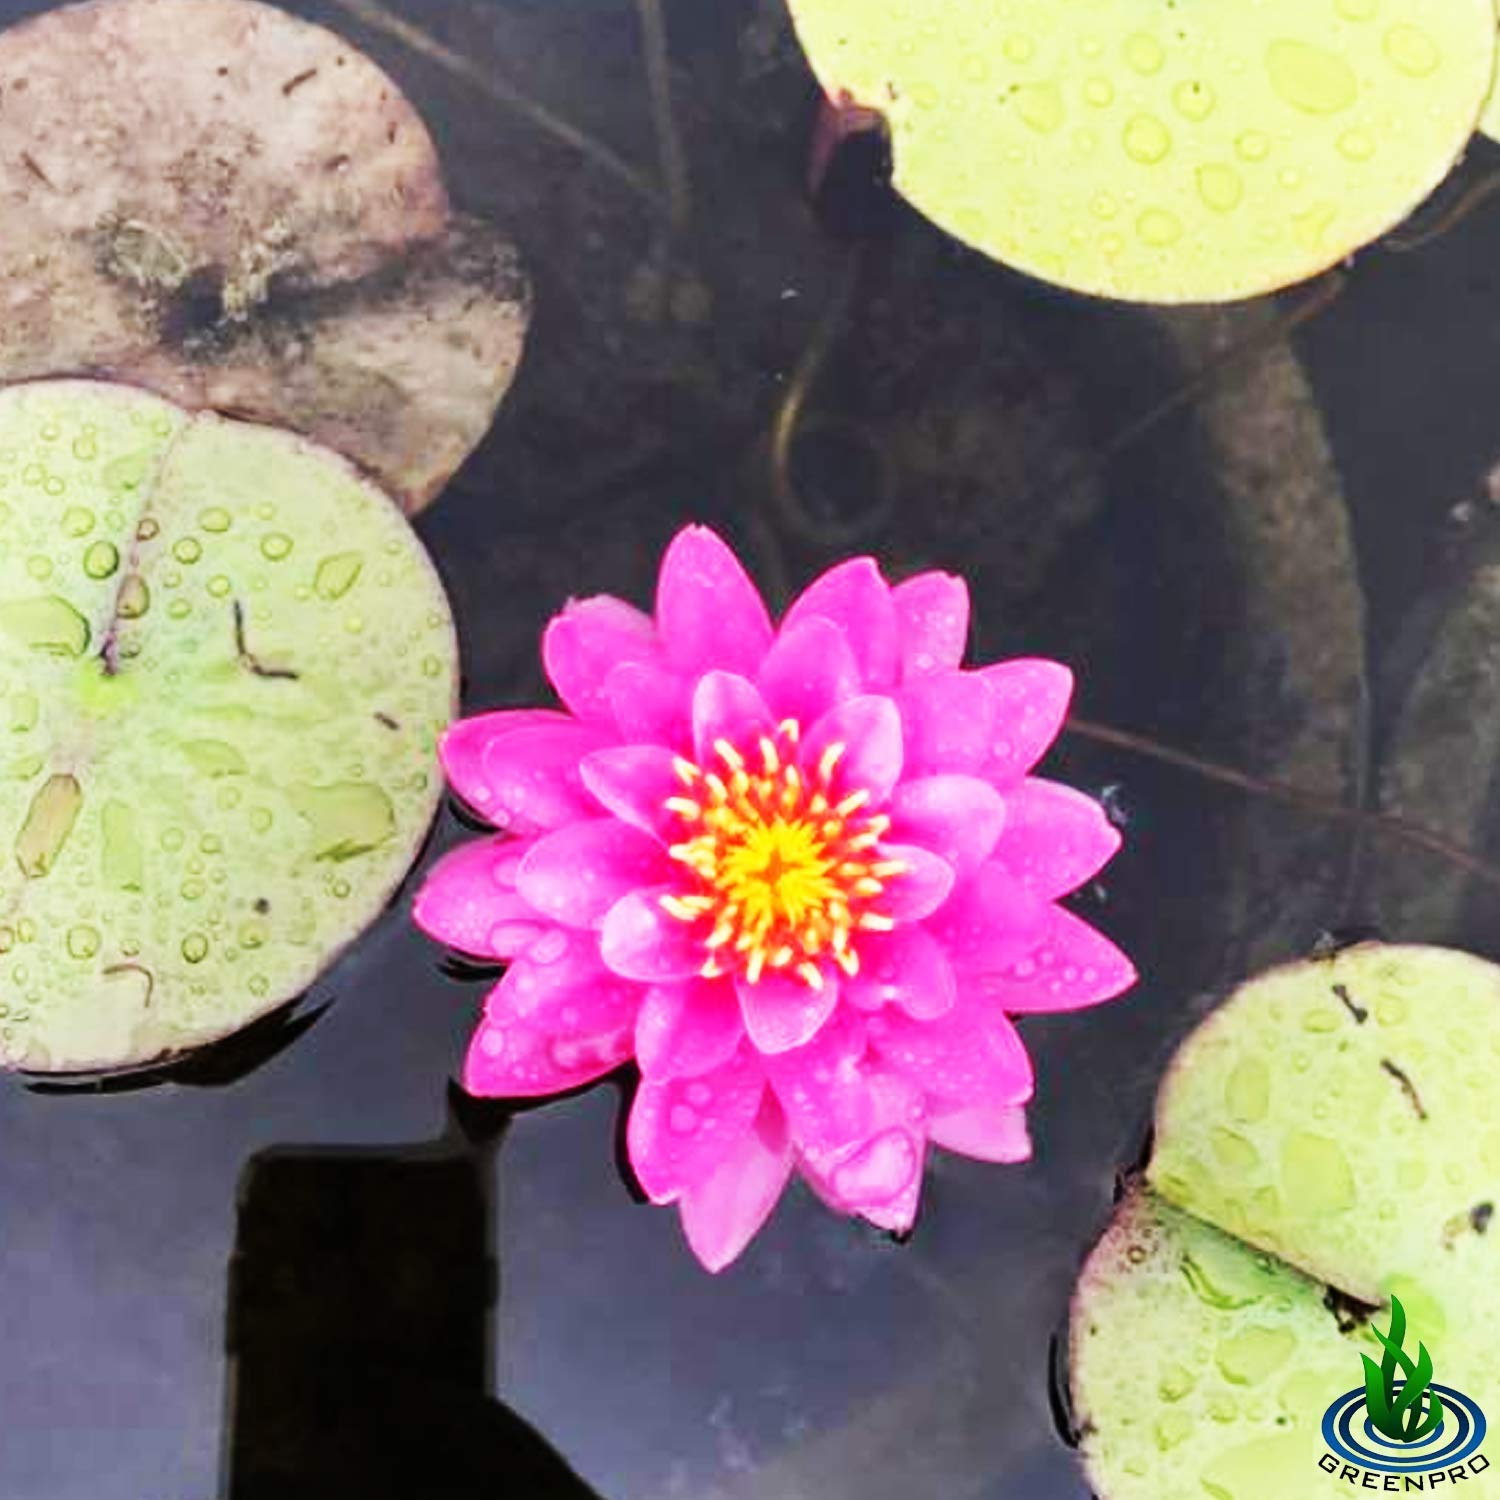 Live Water Lily Tuber Nymphaea Perry's Fire Opal Pink Red Hardy Aquatic Plants for Aquarium Freshwater Fish Pond Flower Garden by Greenpro (Image #3)